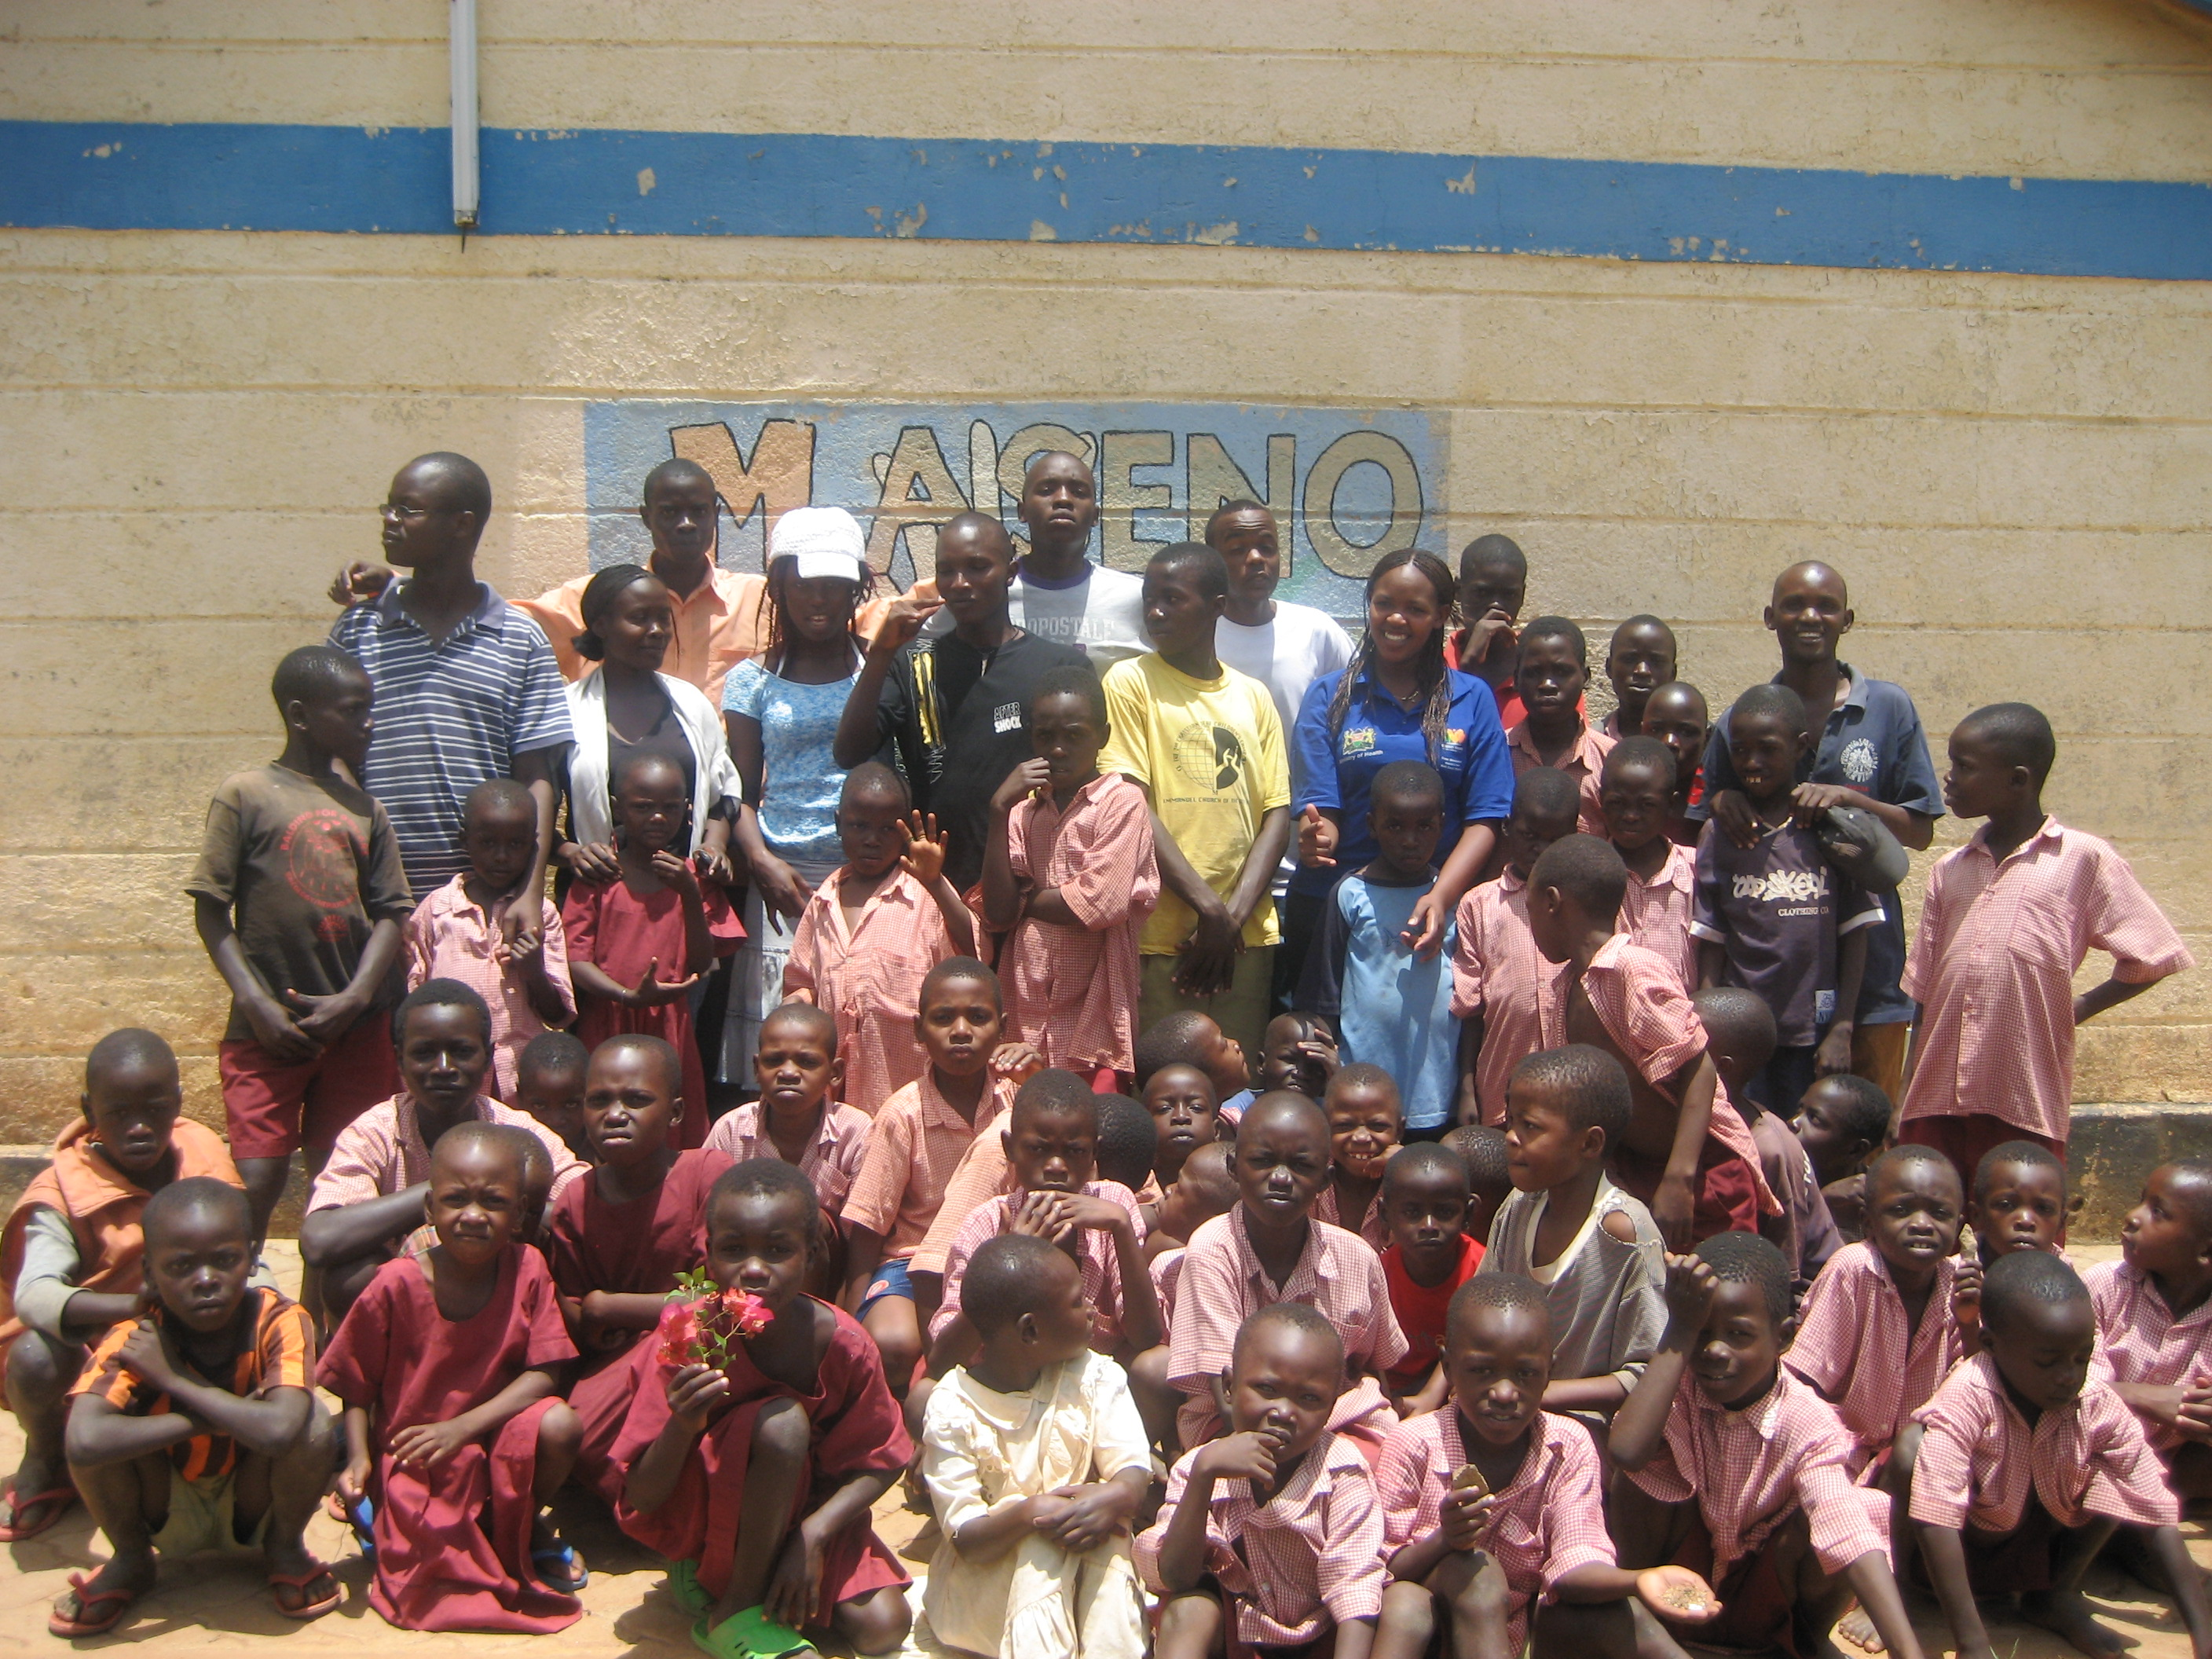 Children and teachers in Maseno